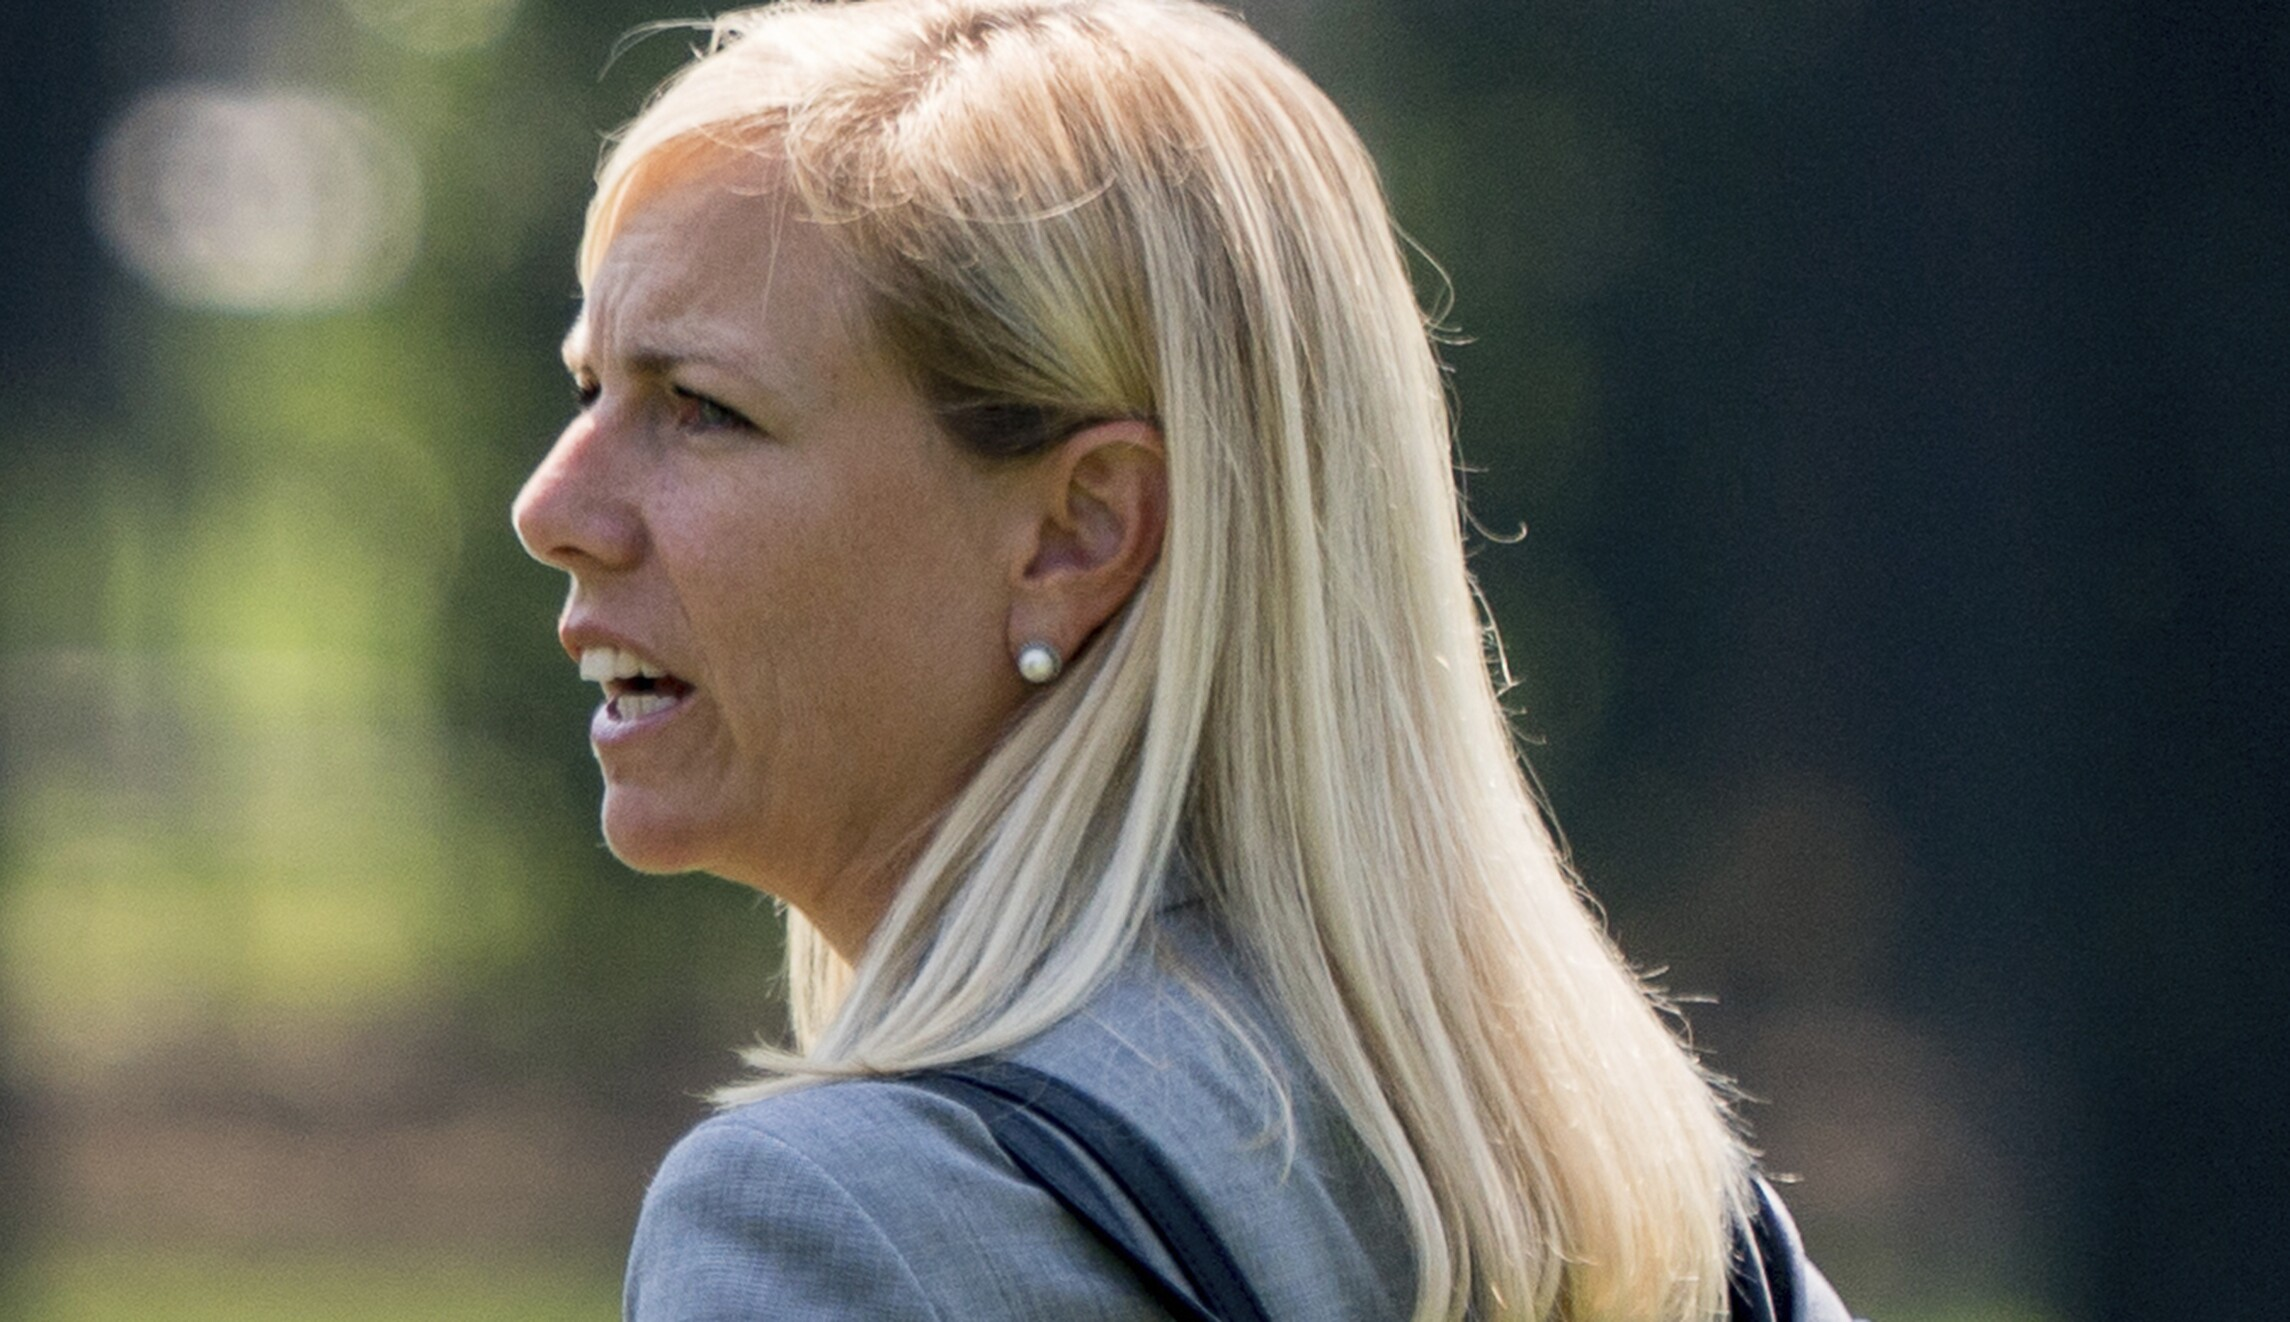 Dhs Secretary Kirstjen Nielsen Says She Is Not Aware Of Deal With Mexico To Pay For Trumps Border Wall on Modern Border